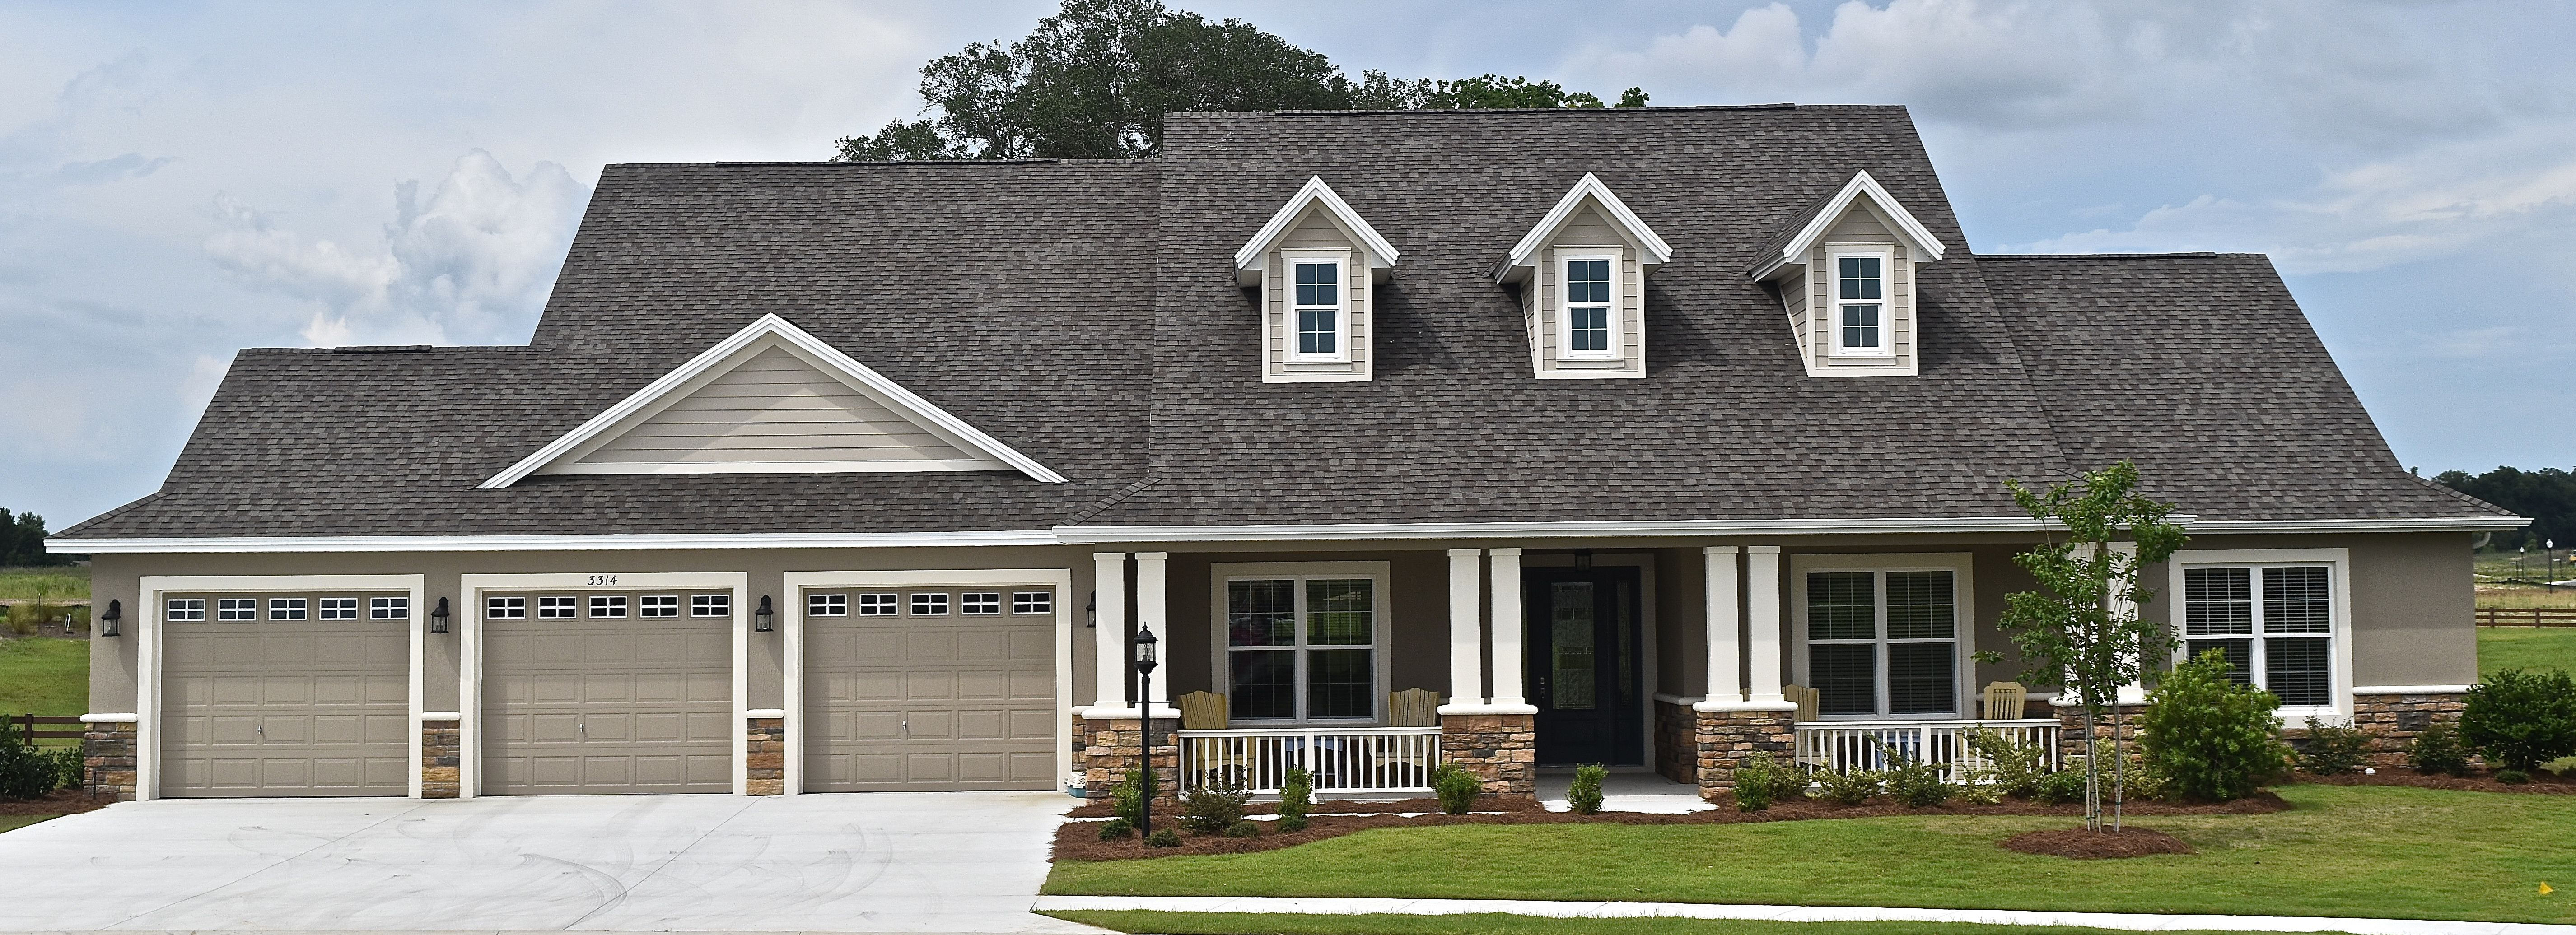 Best Weathered Wood Shingles Google Search Curb Appeal Pinterest Wood Shingles Weathered 400 x 300